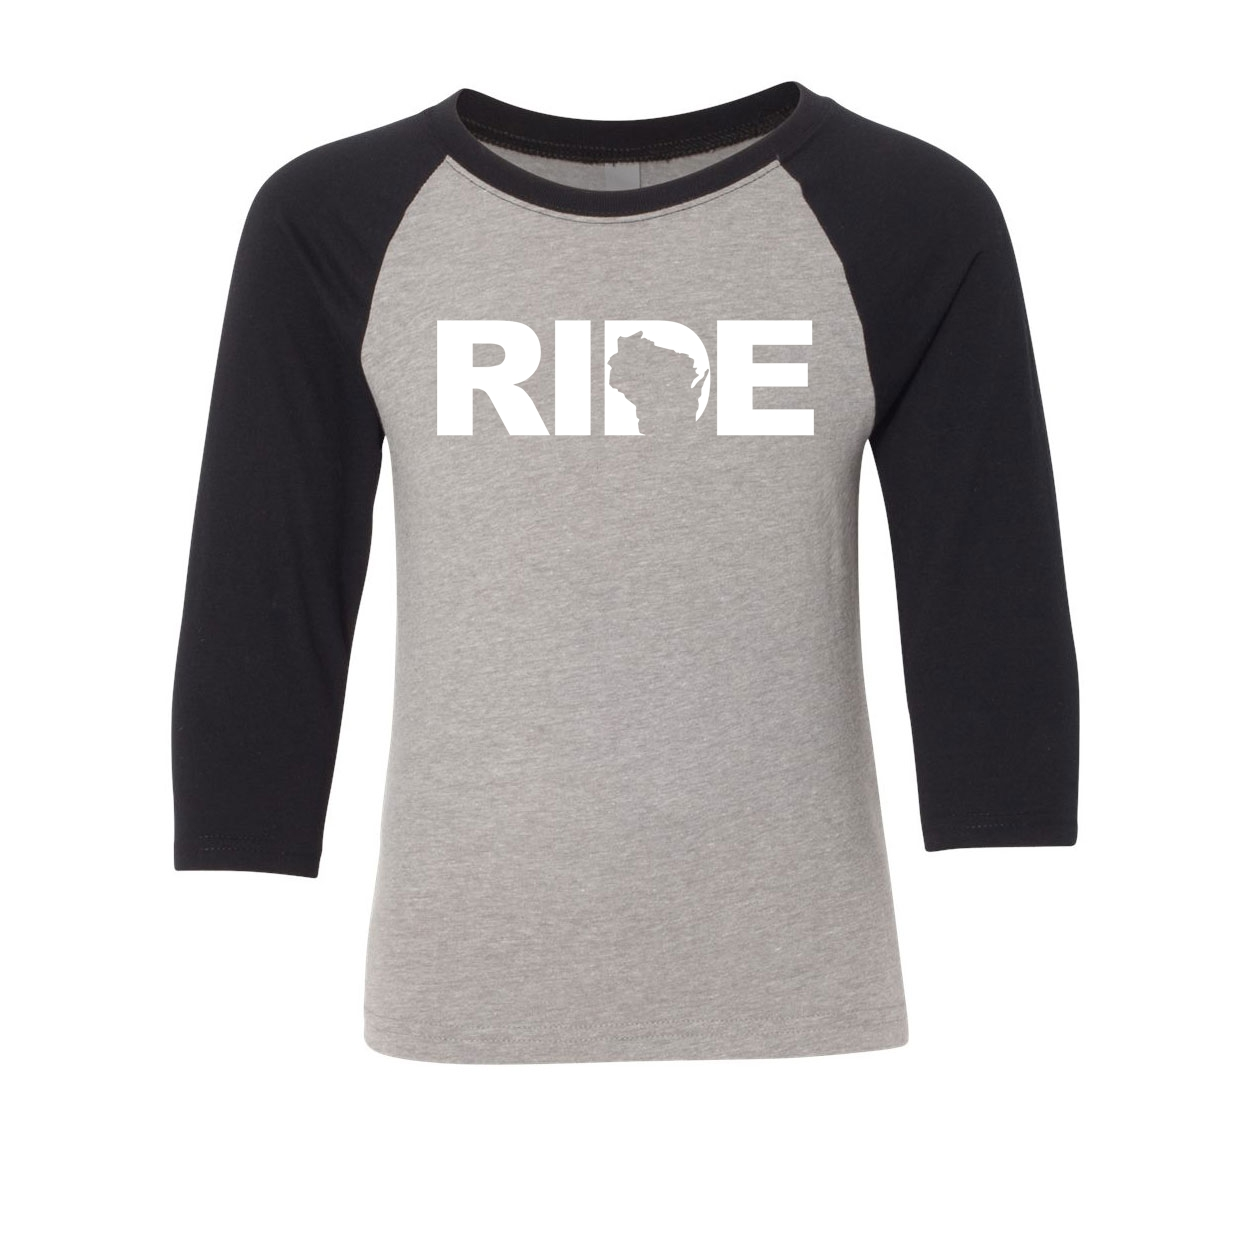 Ride Wisconsin Classic Youth Premium Raglan Shirt Gray/Black (White Logo)